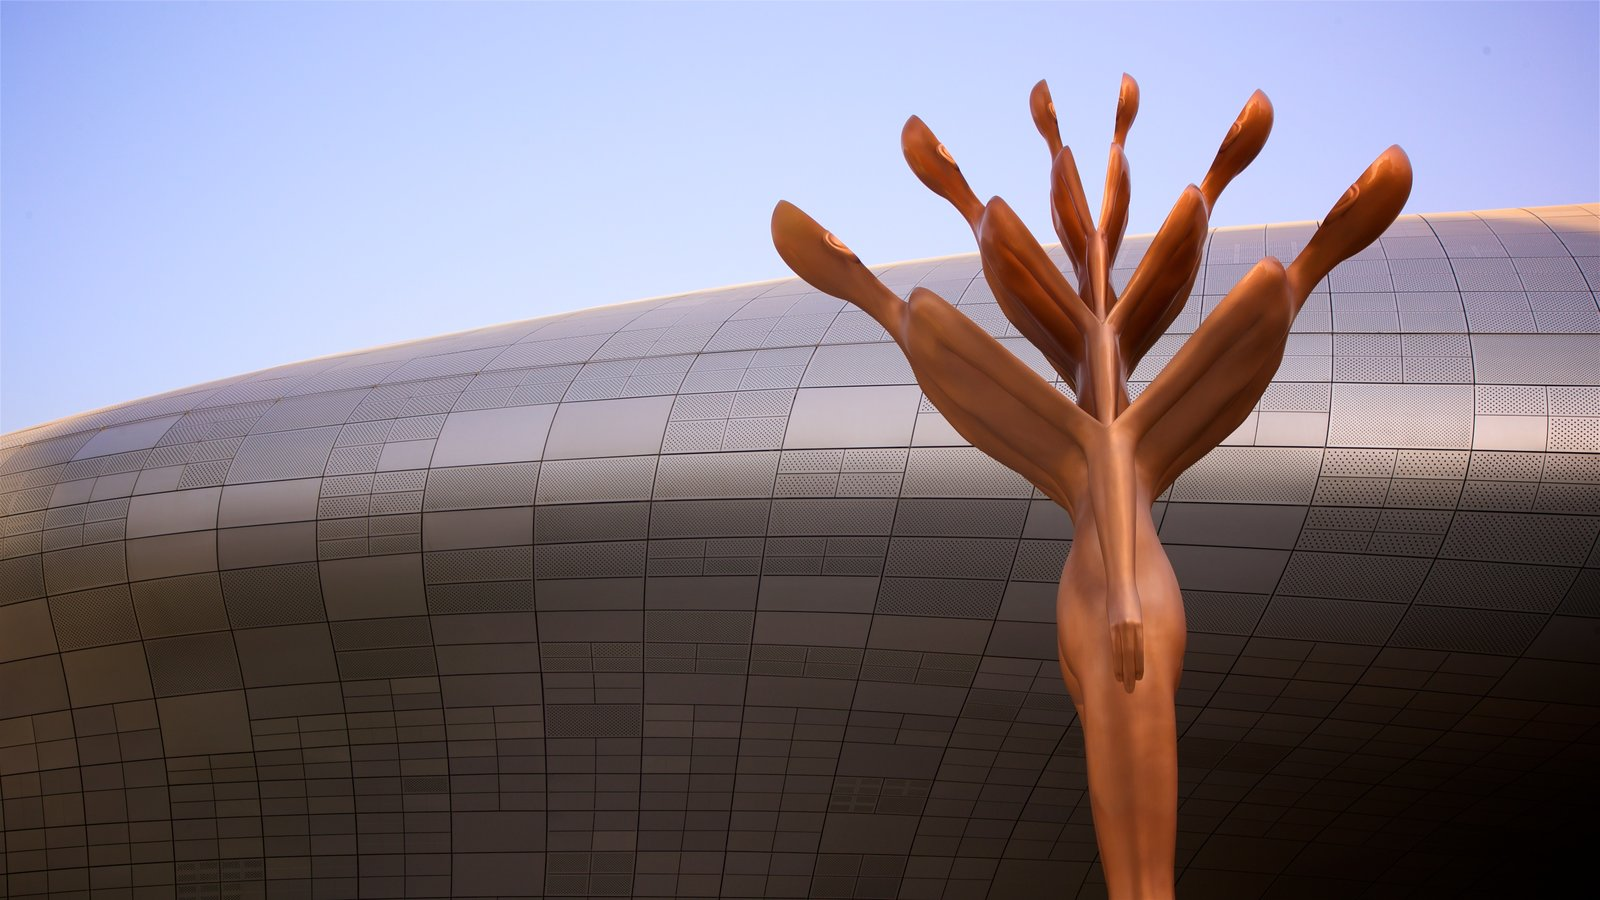 Dongdaemun Design Plaza which includes outdoor art and modern architecture